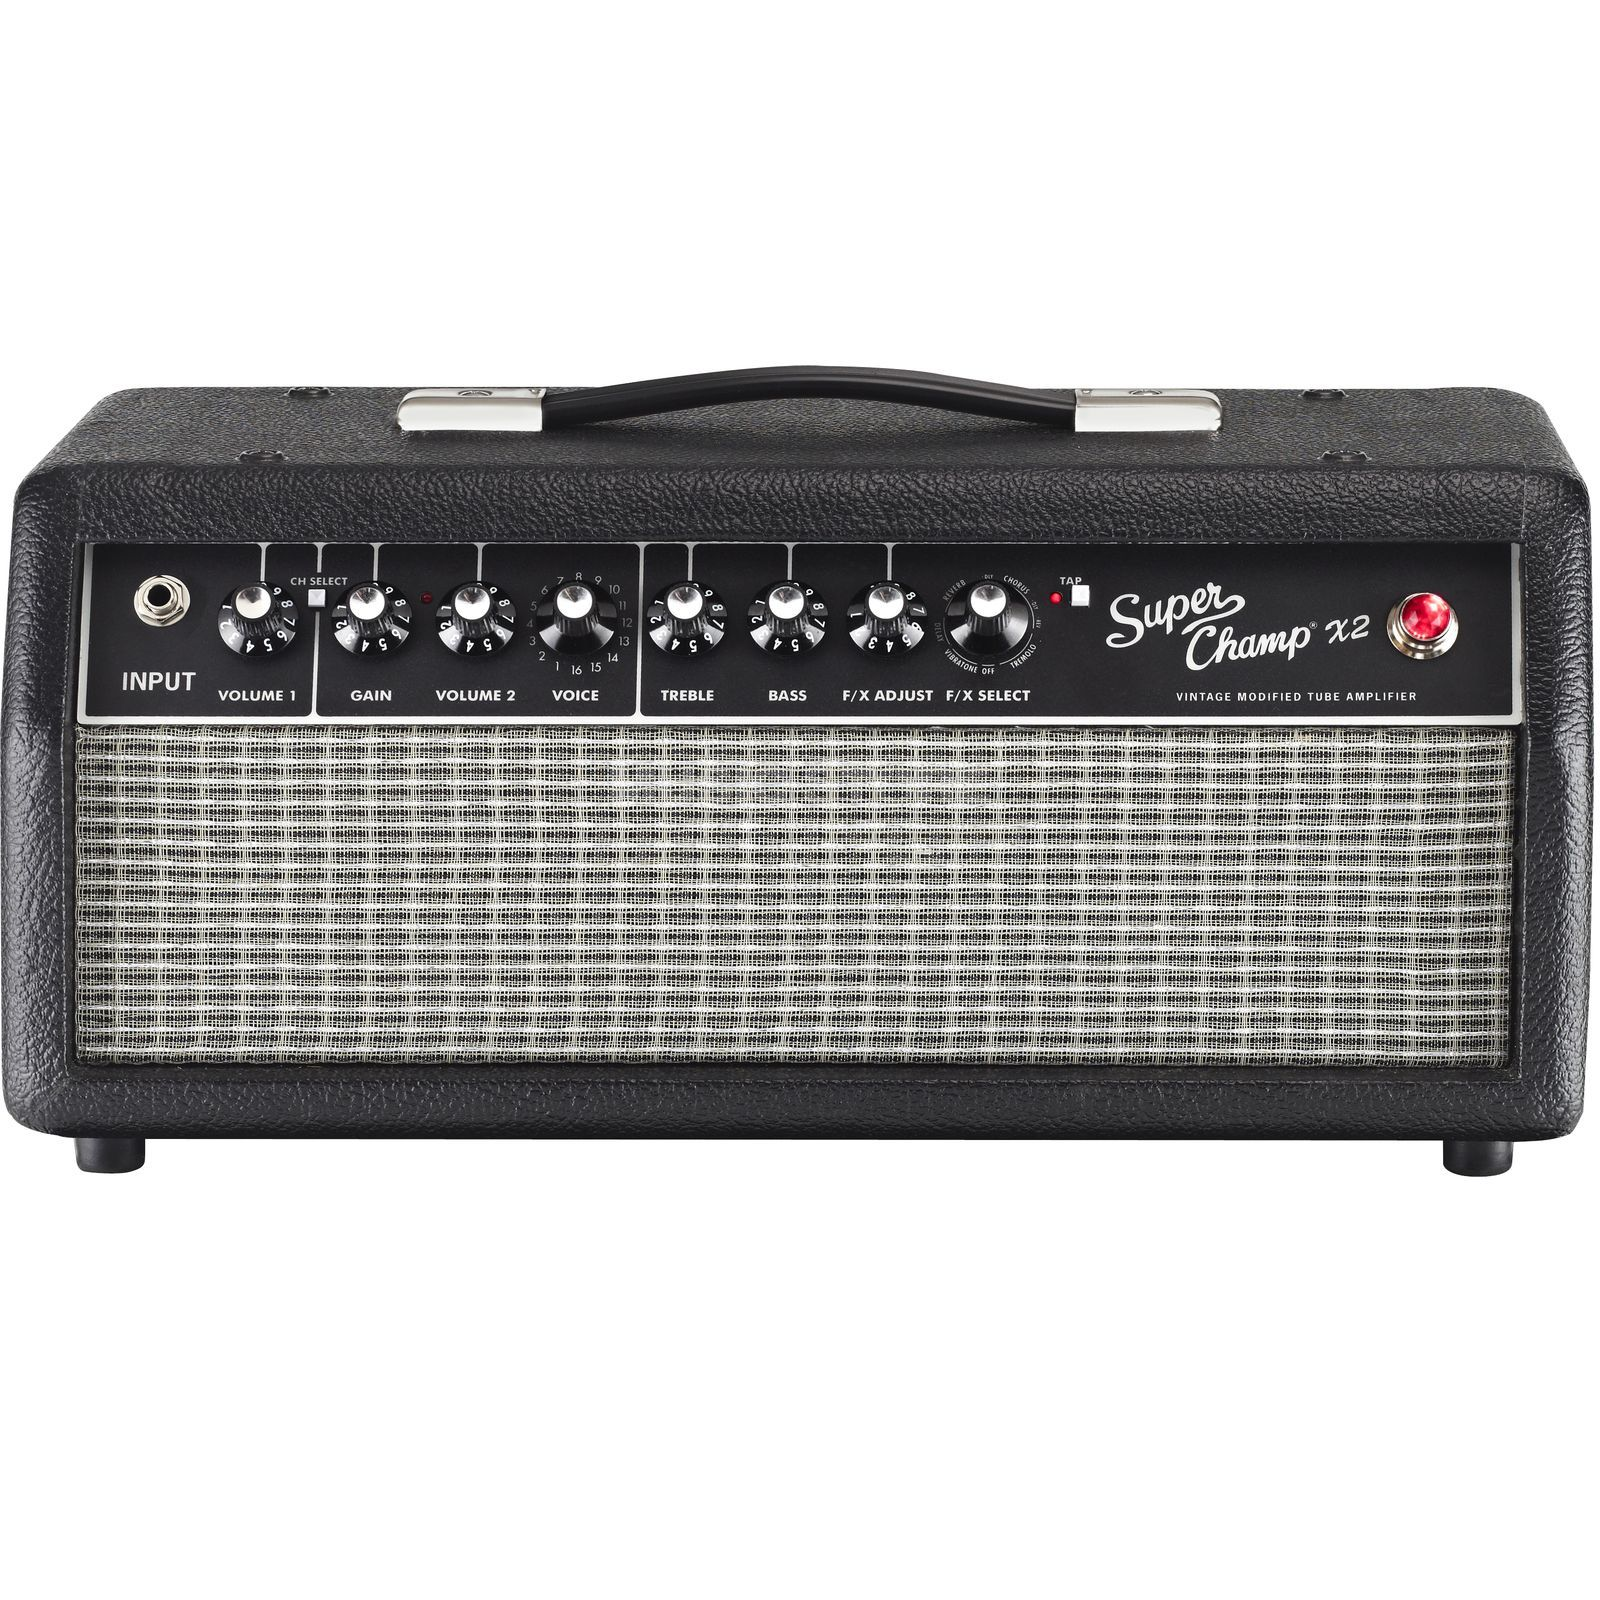 Fender Super Champ X2 HD Guitar Amplifier Head Produktbillede